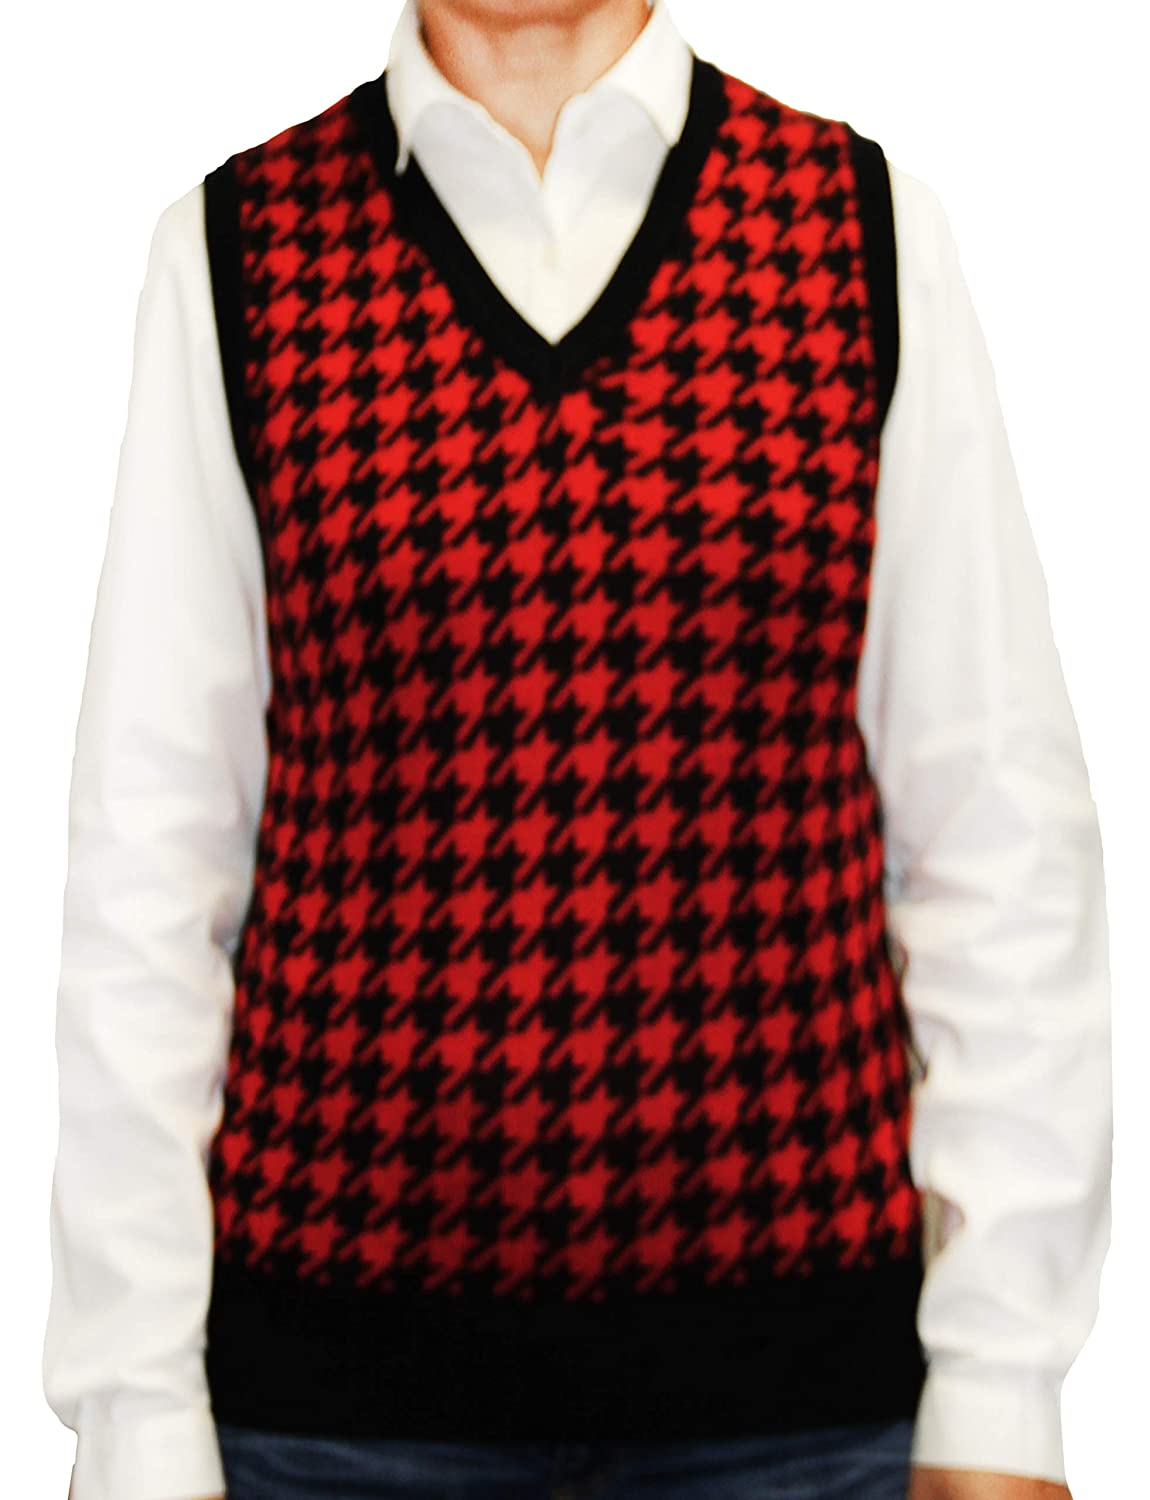 1920s Blouses & Shirts History Blue Ocean Ladies Houndstooth Sweater Vest $29.00 AT vintagedancer.com